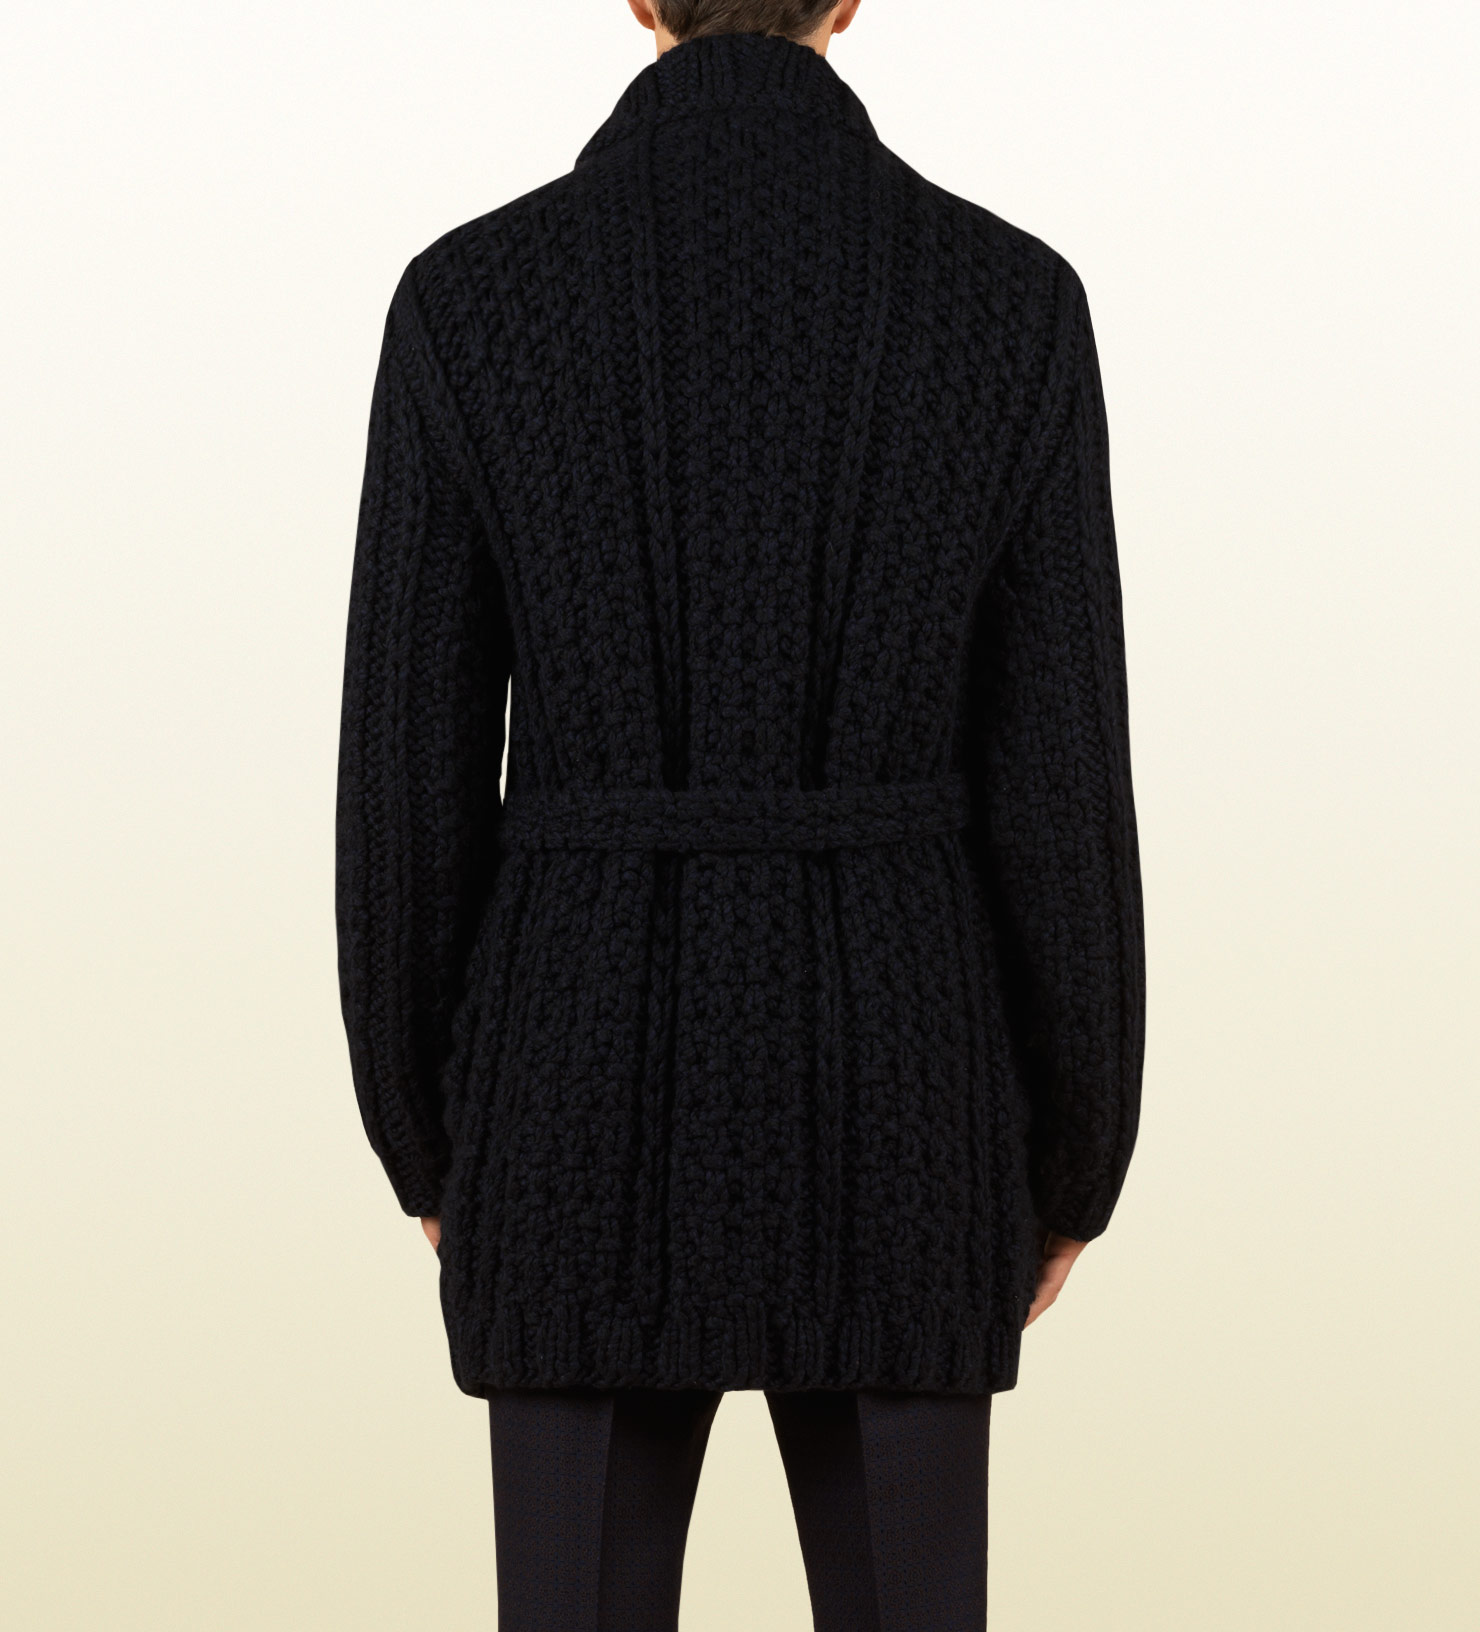 Gucci Oversized Wool Cardigan Sweater Coat in Black for Men | Lyst